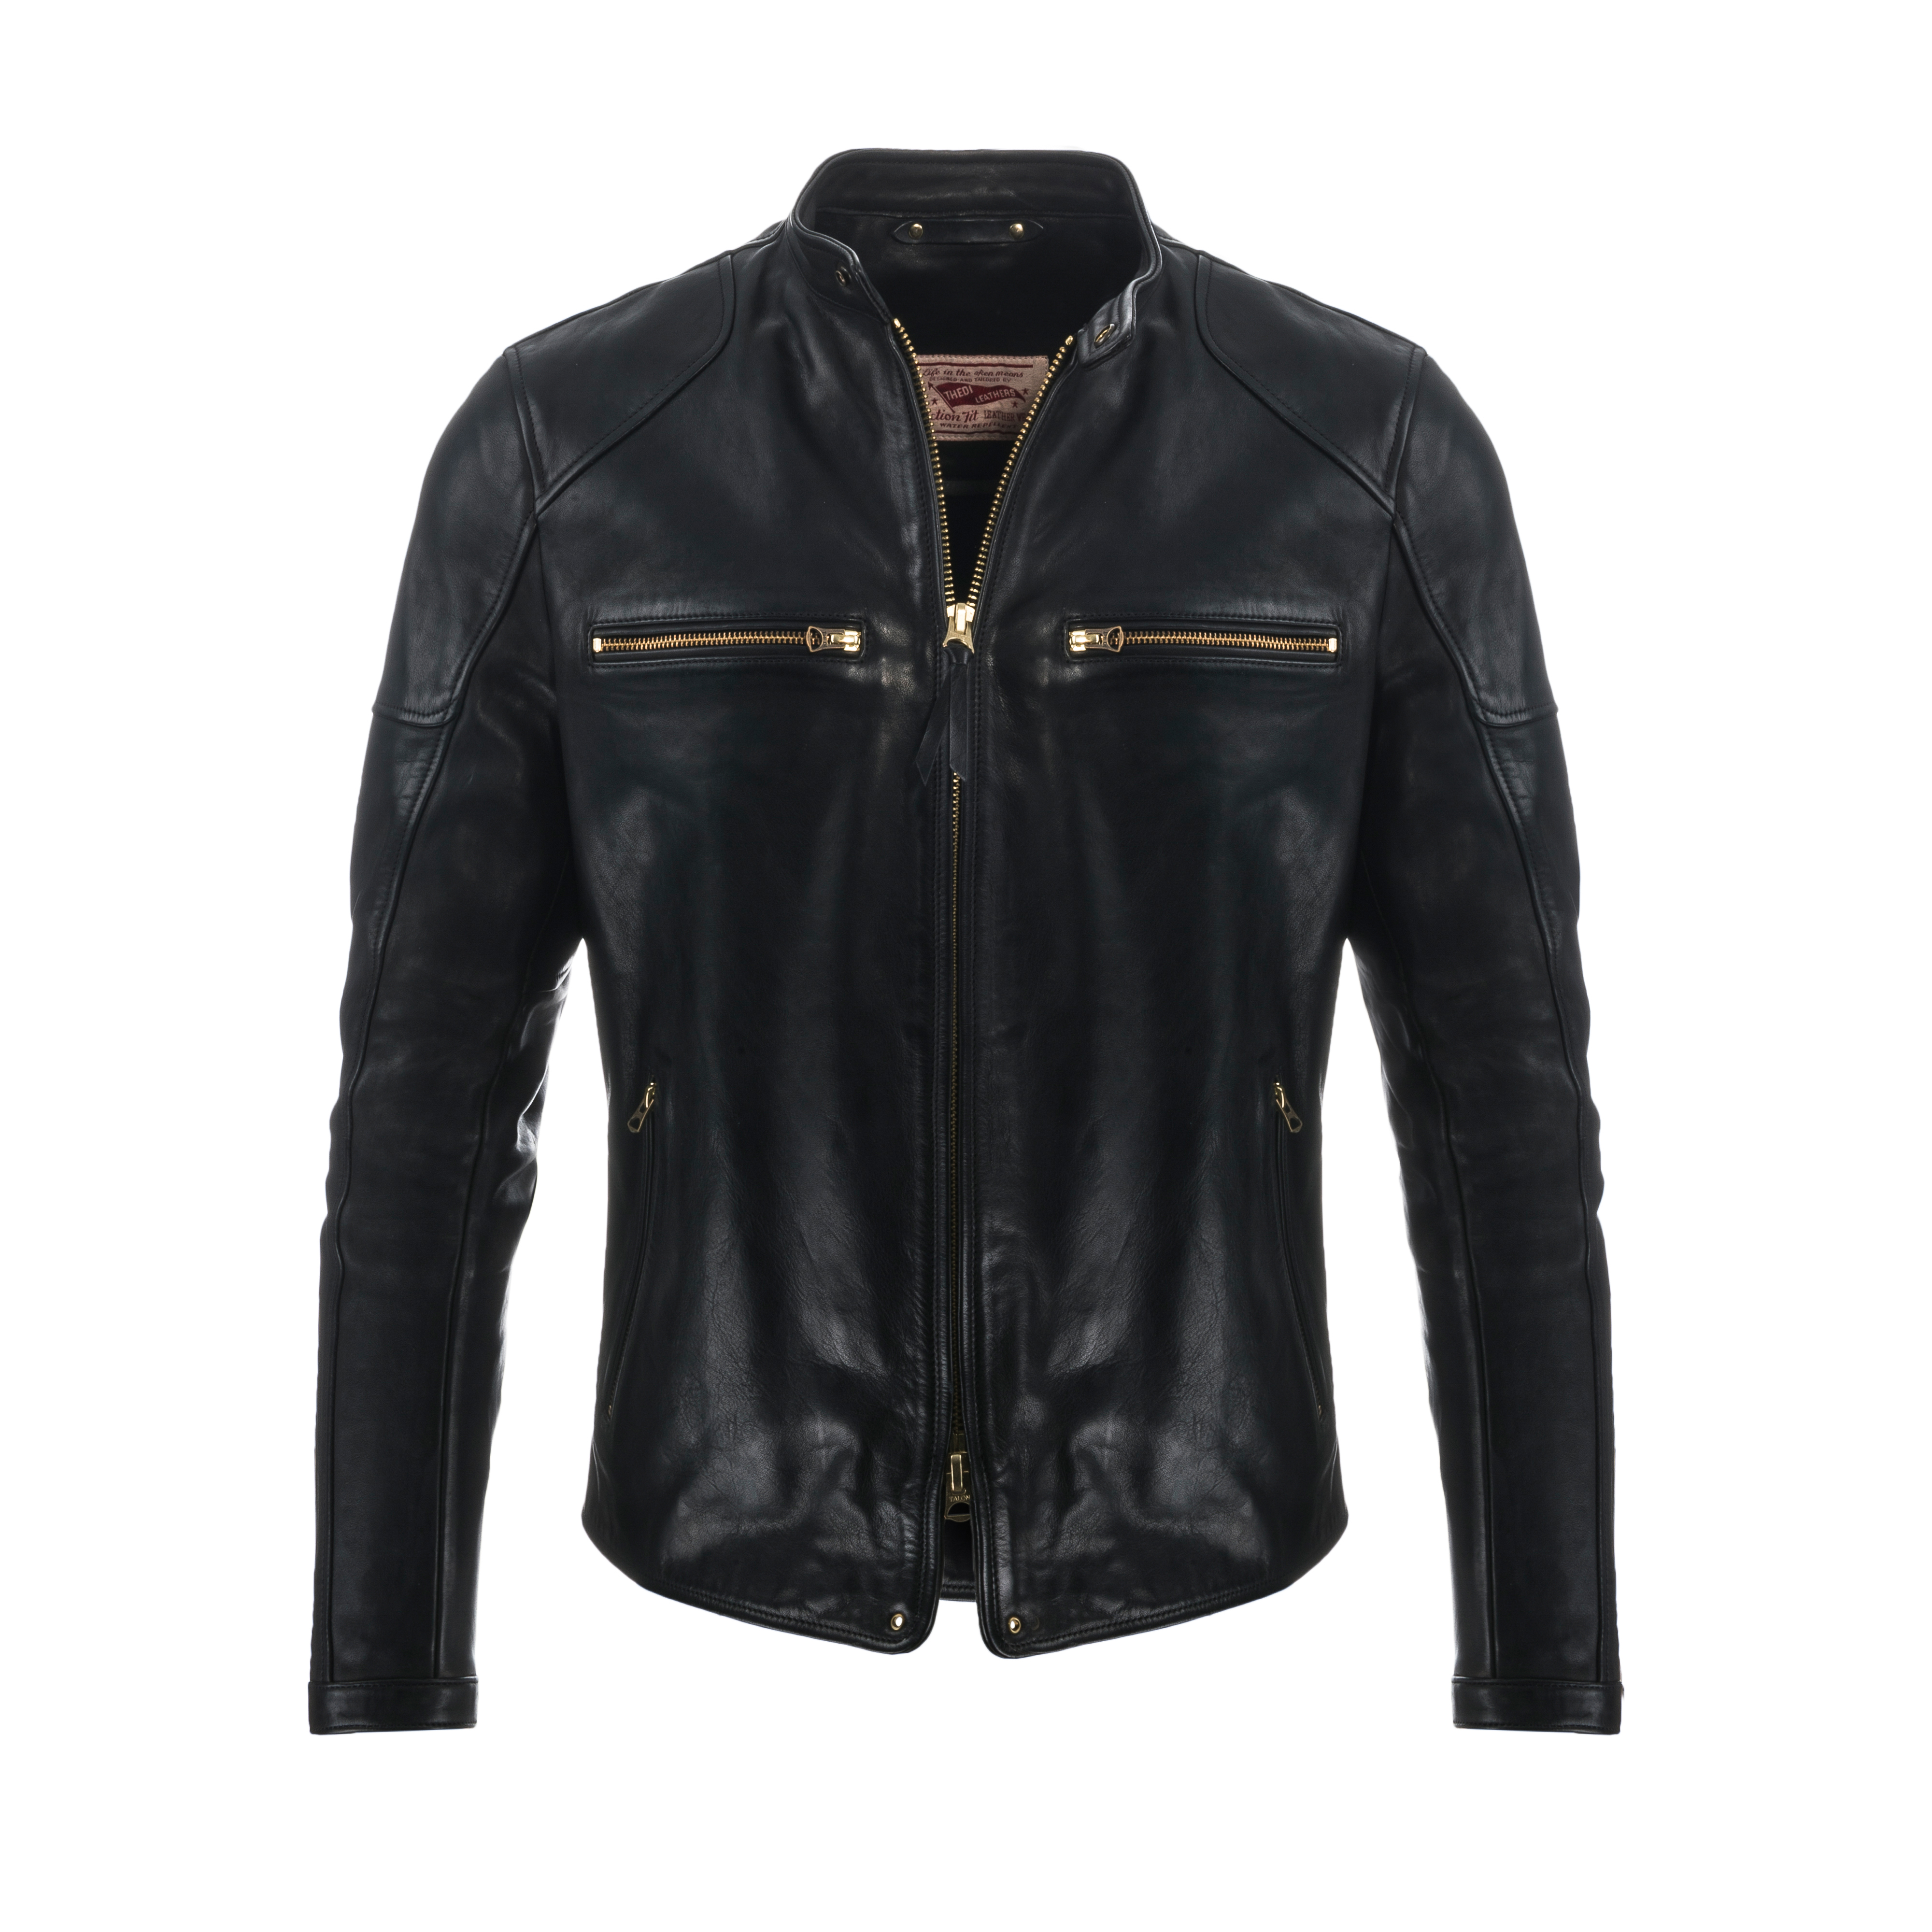 after trophy red beauty belstaff classic rally jacket woman look burnished tourist leather you inside heritage of dakar rugged the rug